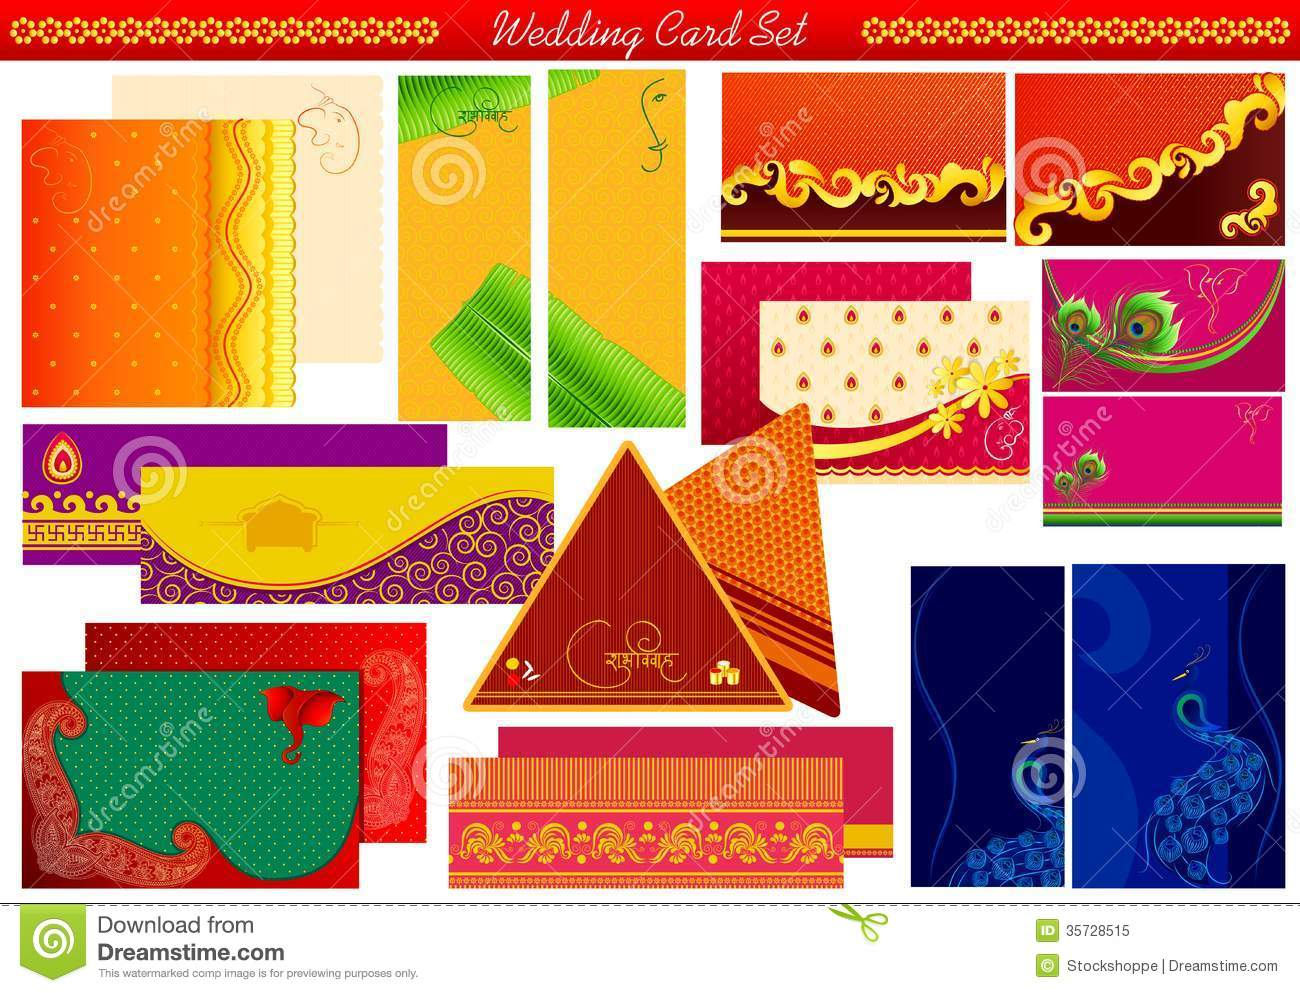 Wedding invitation vector illustration vector free download - Royalty Free Stock Photo Download Indian Wedding Invitation Card